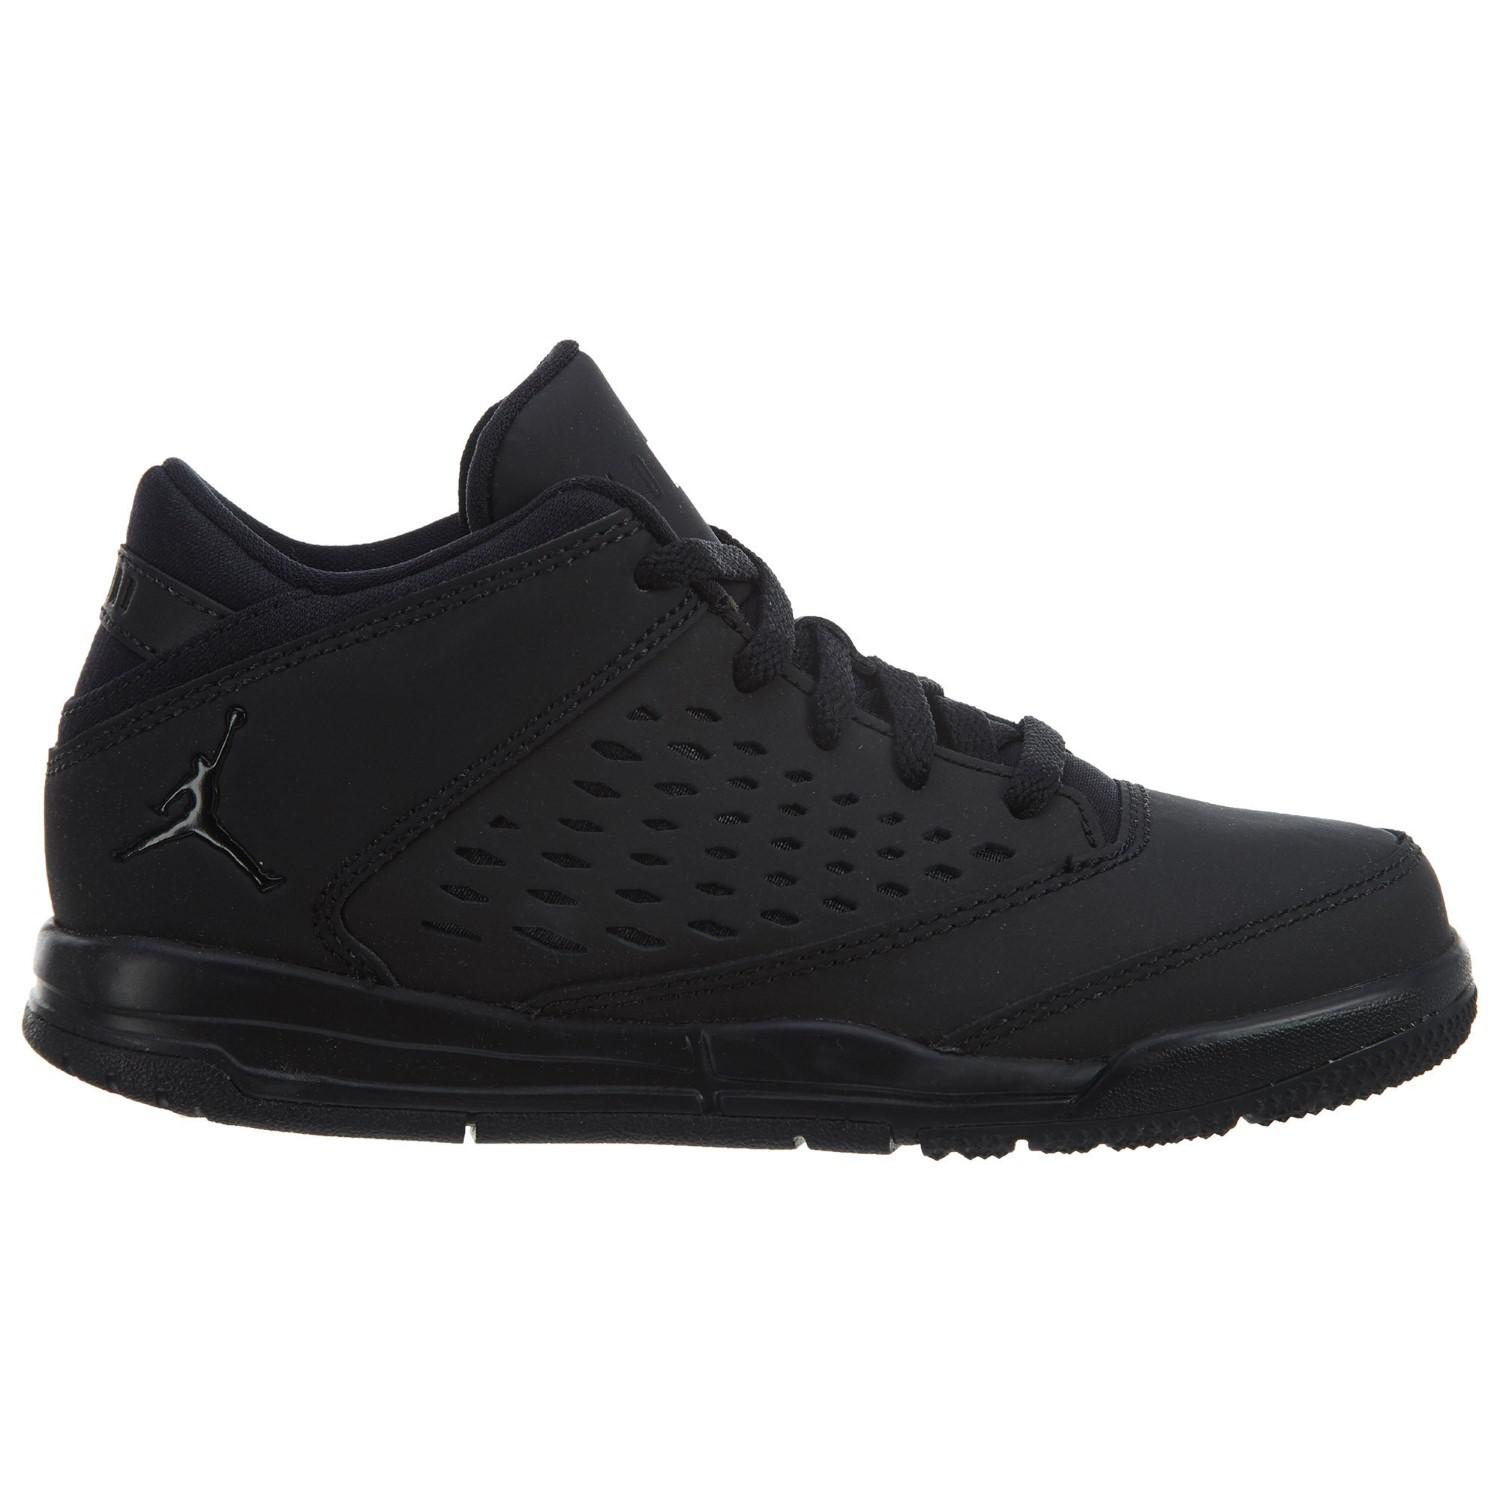 a0dd87f55ed Nike 921197-010 : Jordan Flight Origin 4 Bp Boys Fashion Sneakers ...